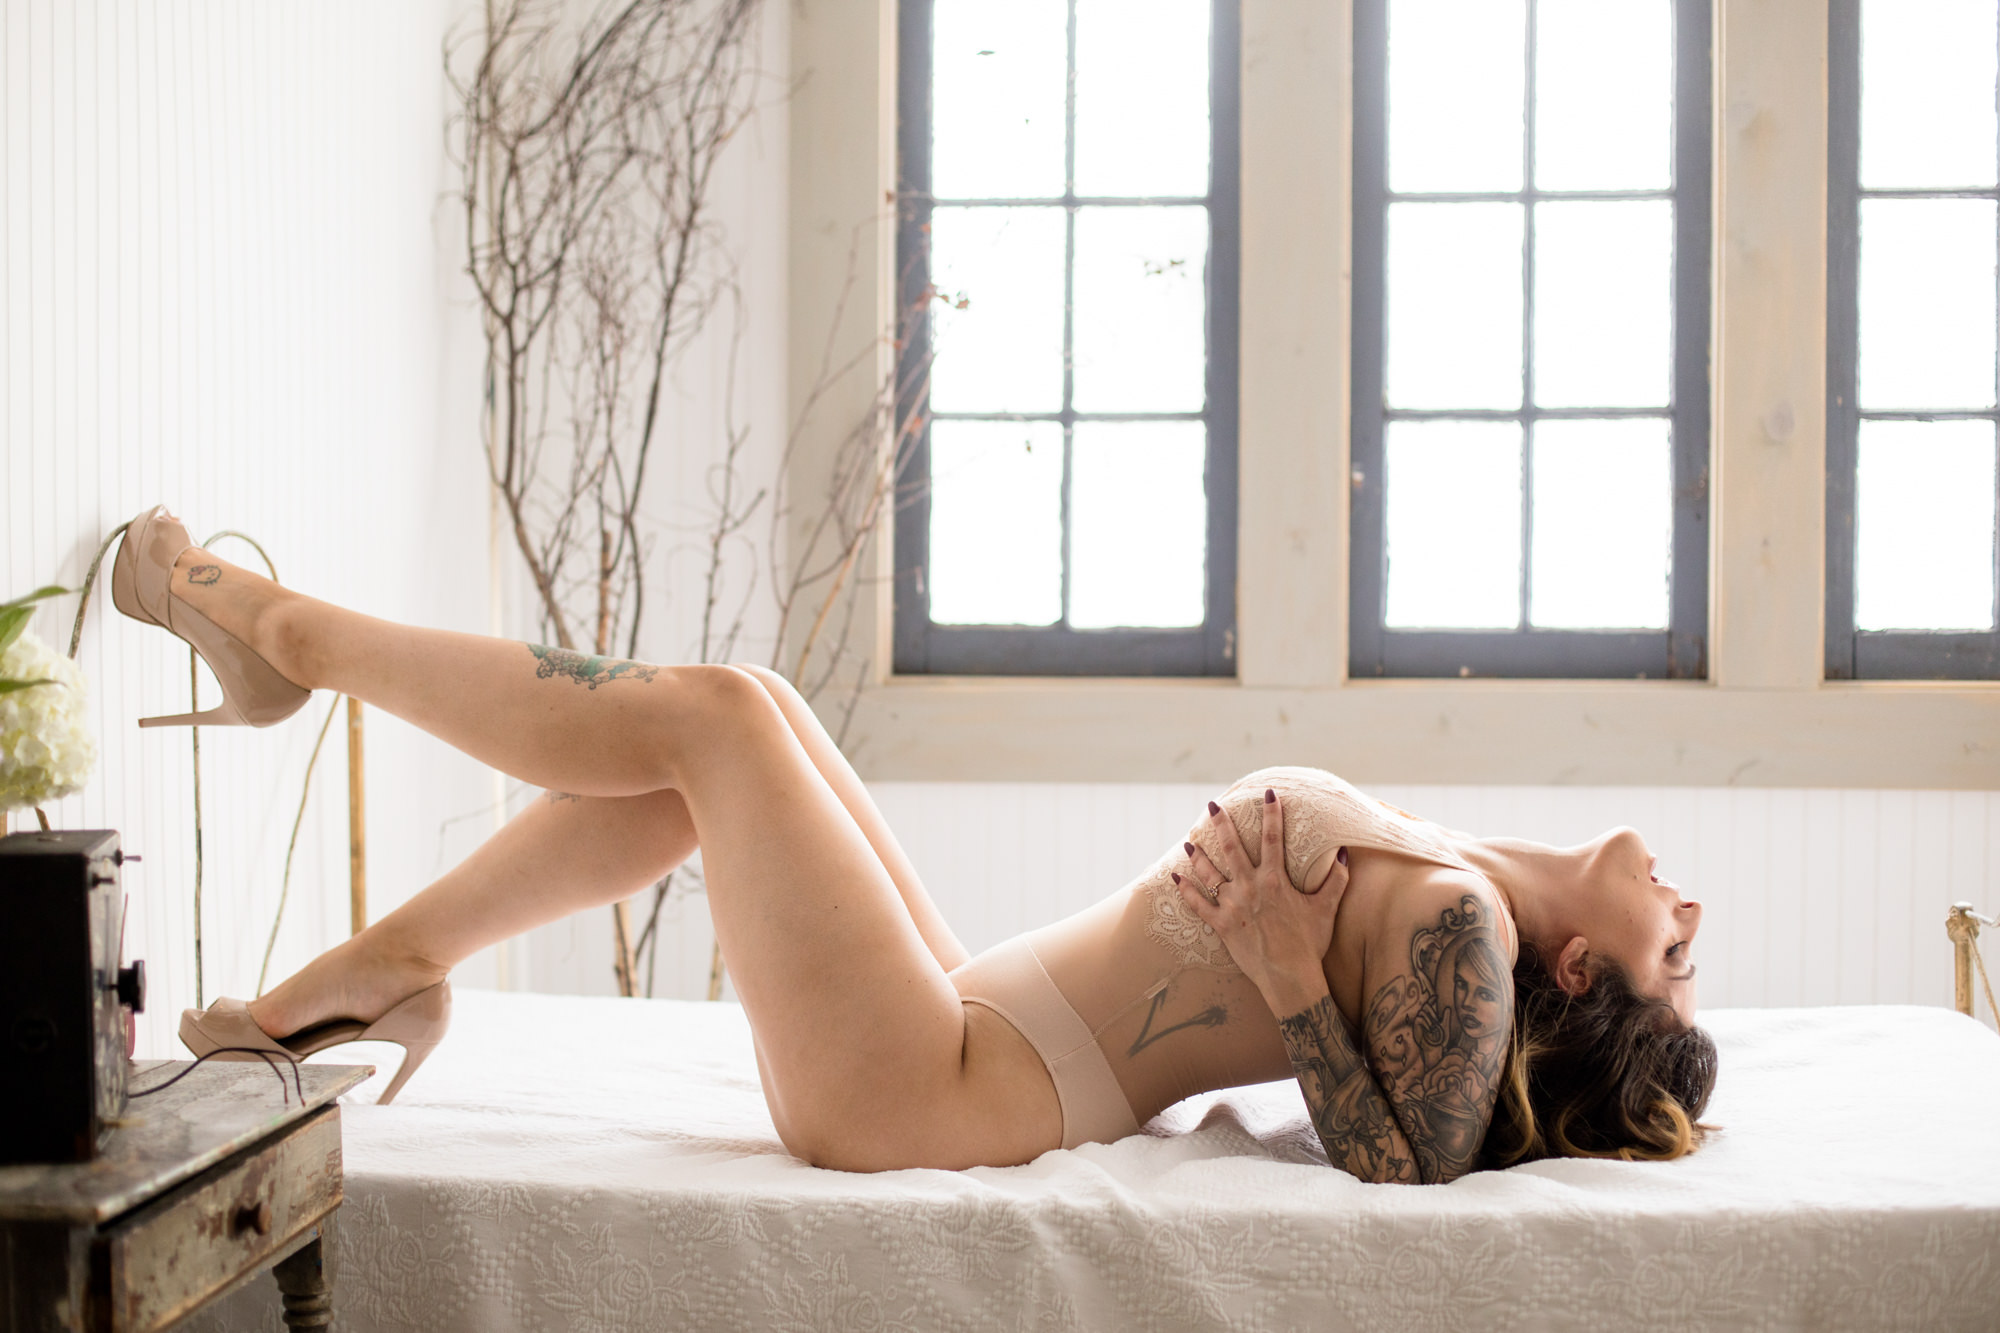 Boudoir photo bride in nude bra and pumps - Jessica Hill Photography